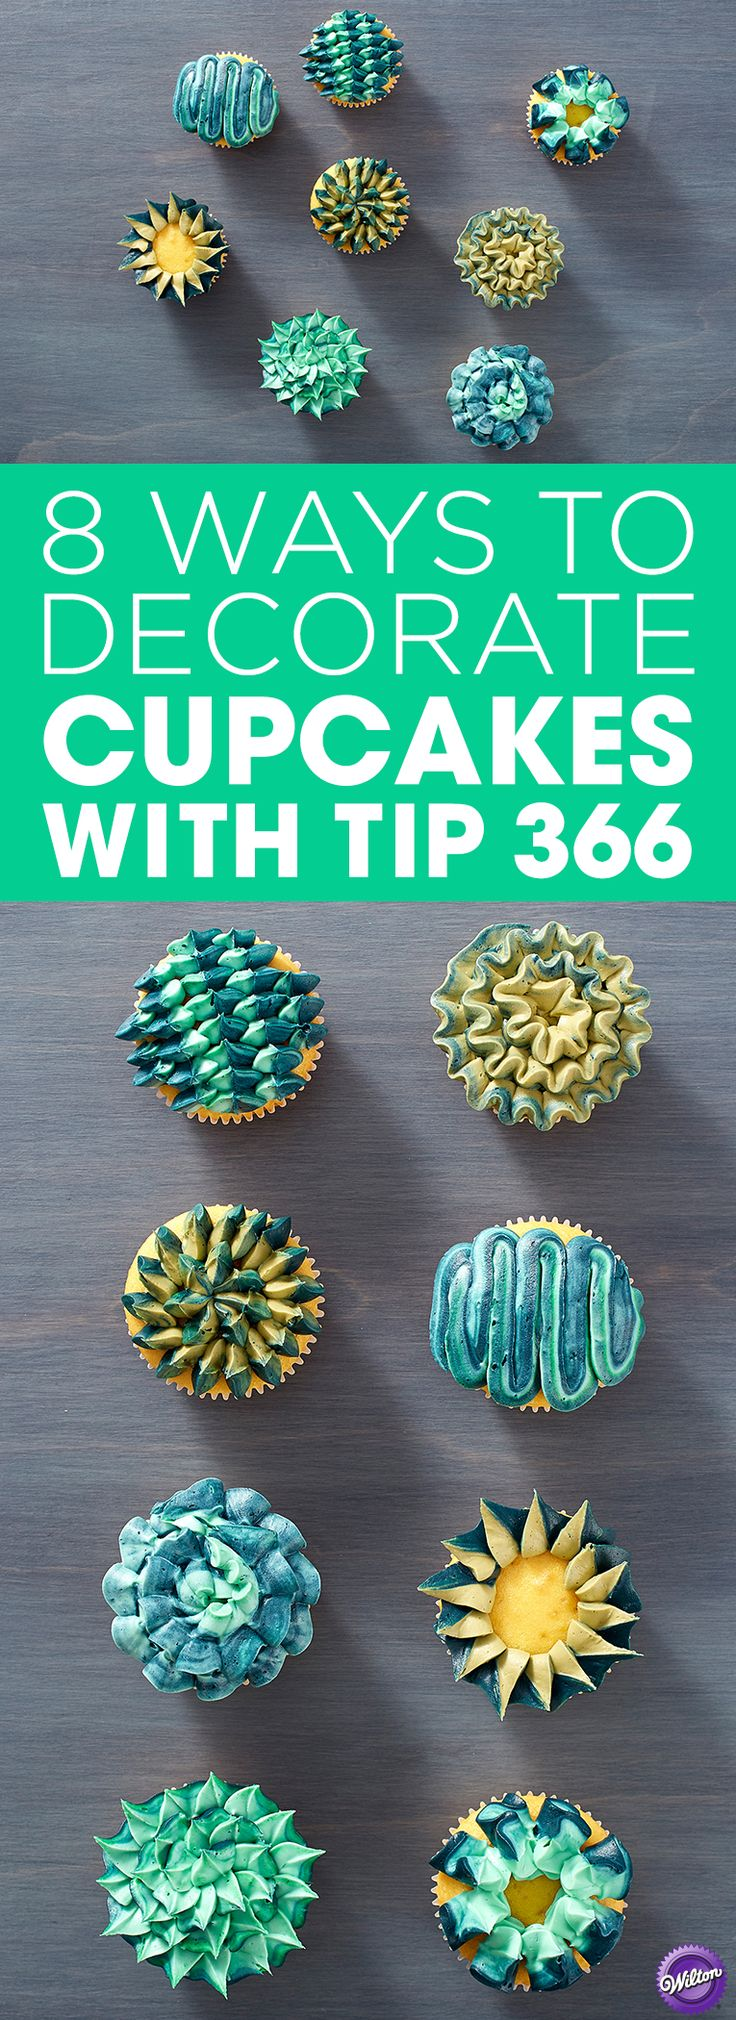 8 Ways to Decorate Cupcakes with Wilton Tip 366 - Learn different ways to use leaf decorating tip 366 and create eight unique designs. A fun idea for parties and for decorators looking to fine-tune their piping skills, these fun cupcake designs can also be made using any icing color combination you'd like.